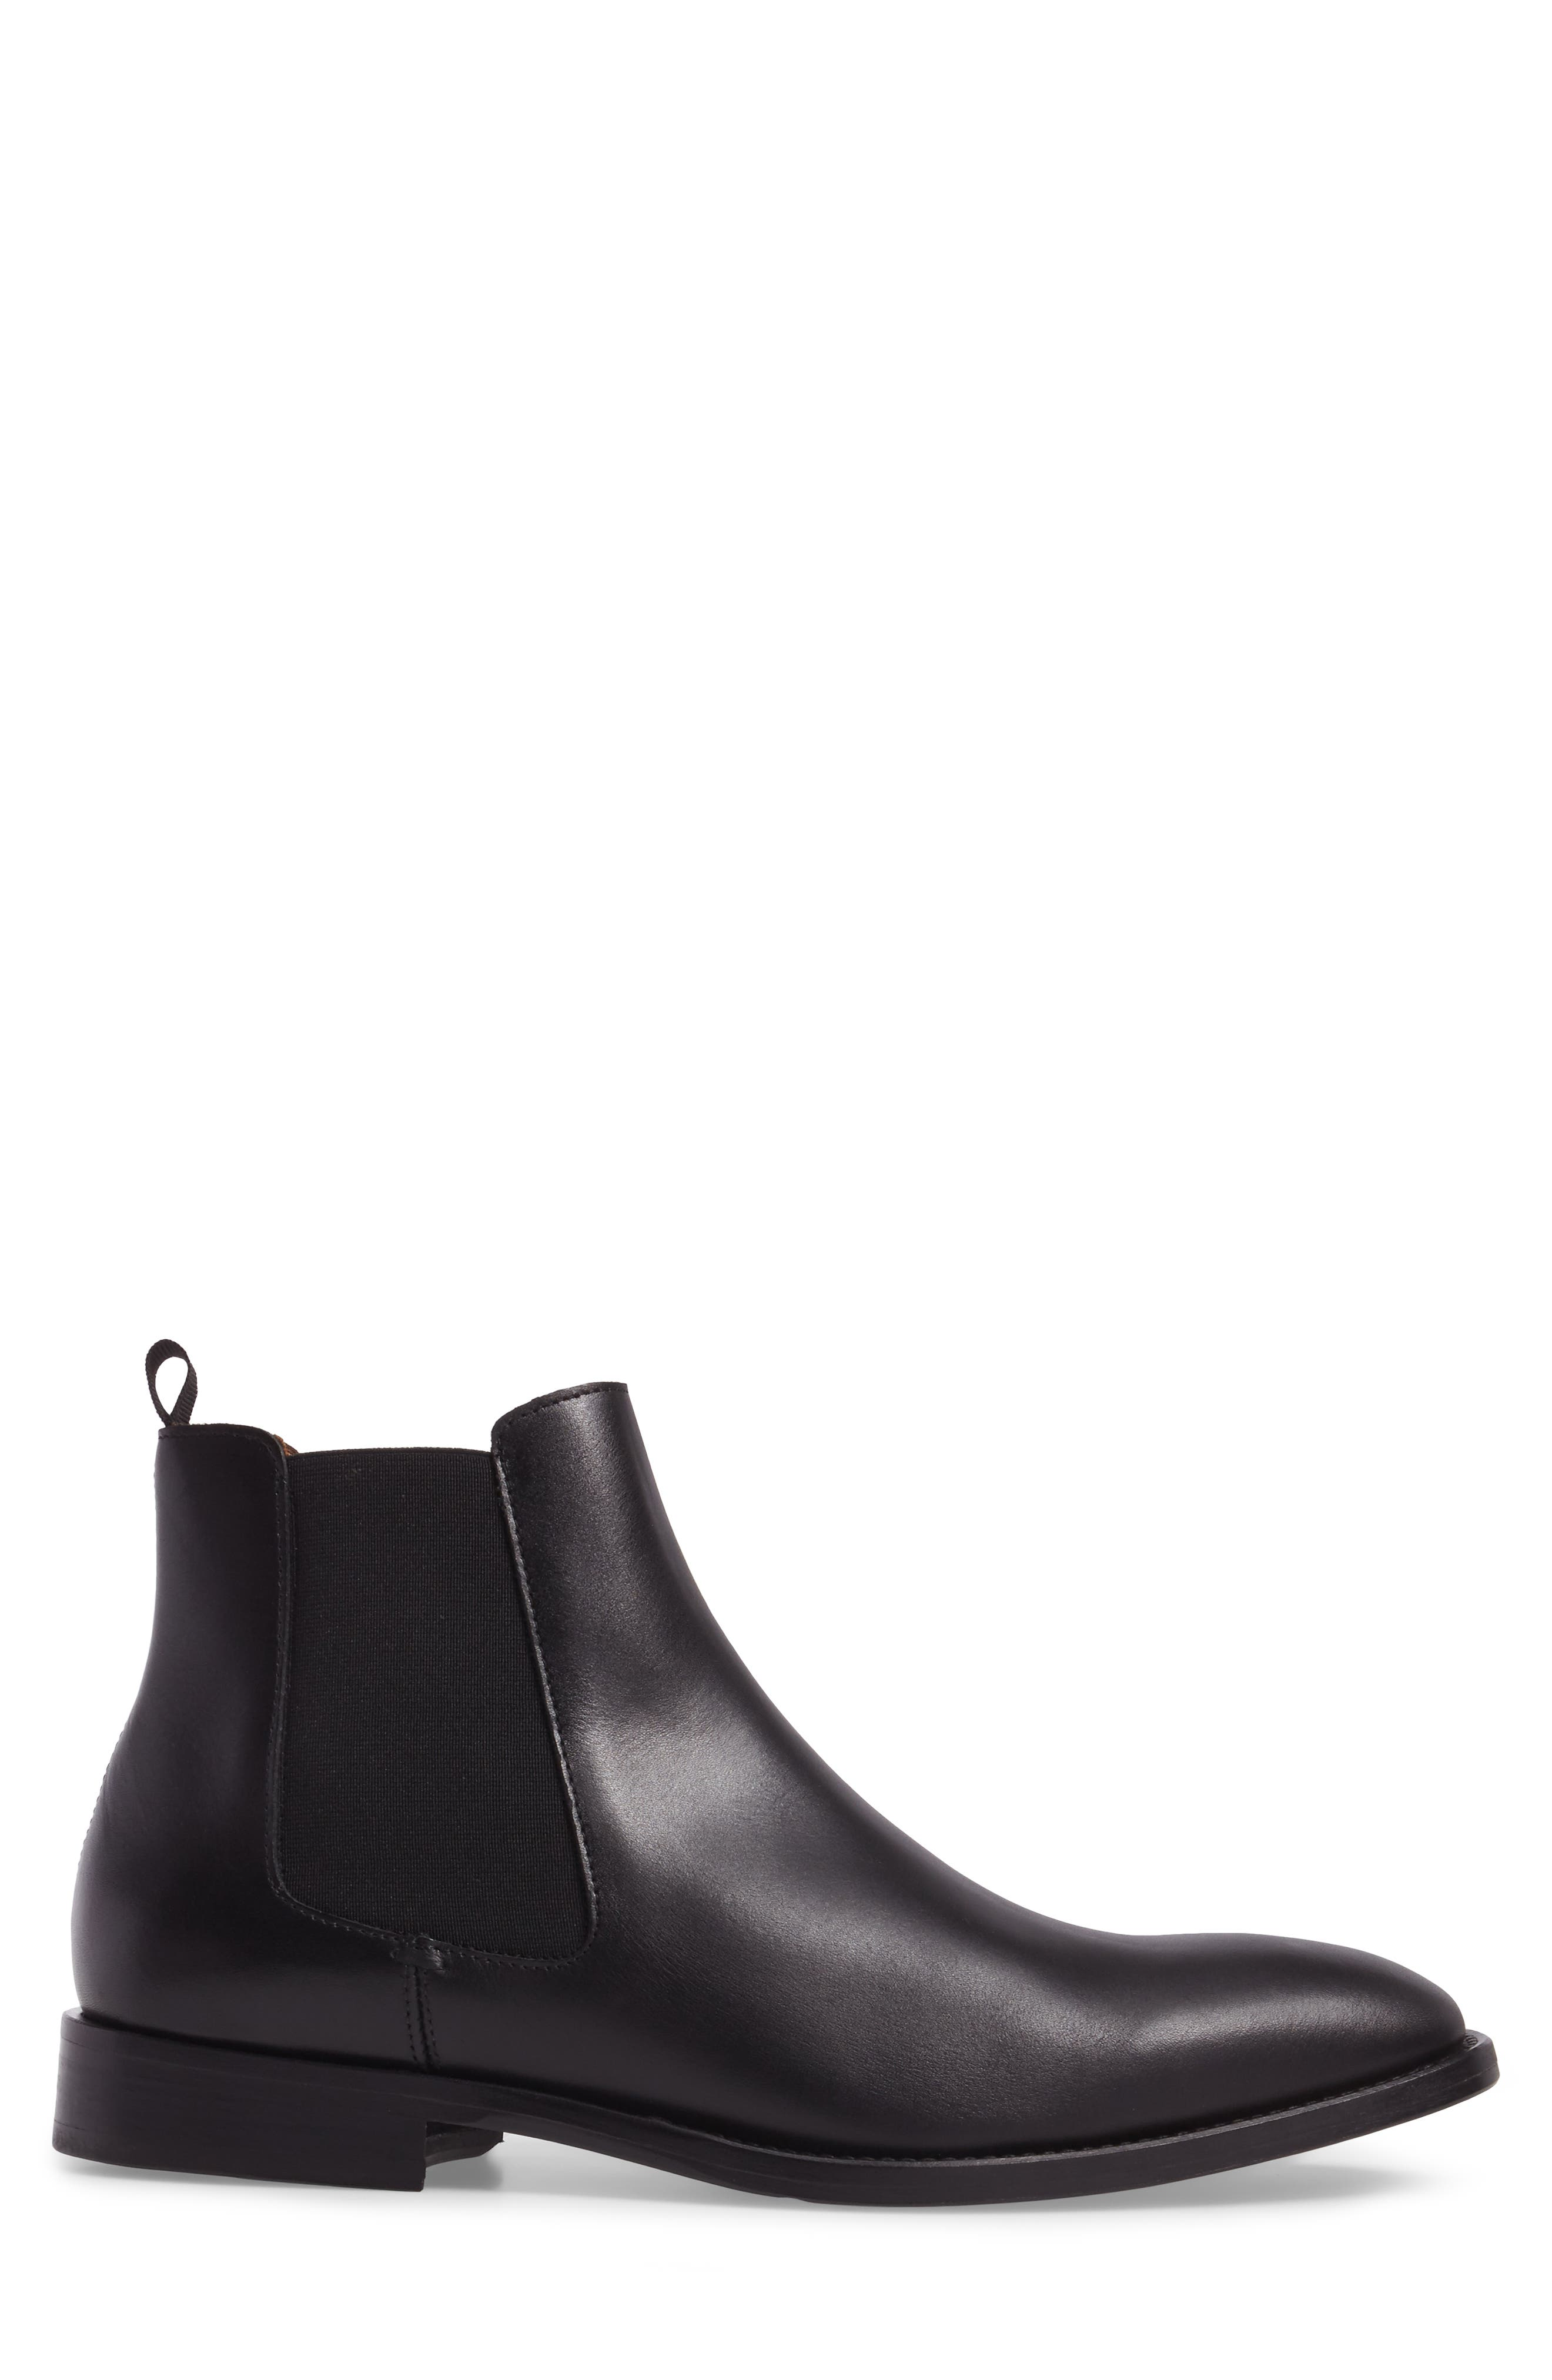 Haldien Chelsea Boot,                             Alternate thumbnail 3, color,                             001